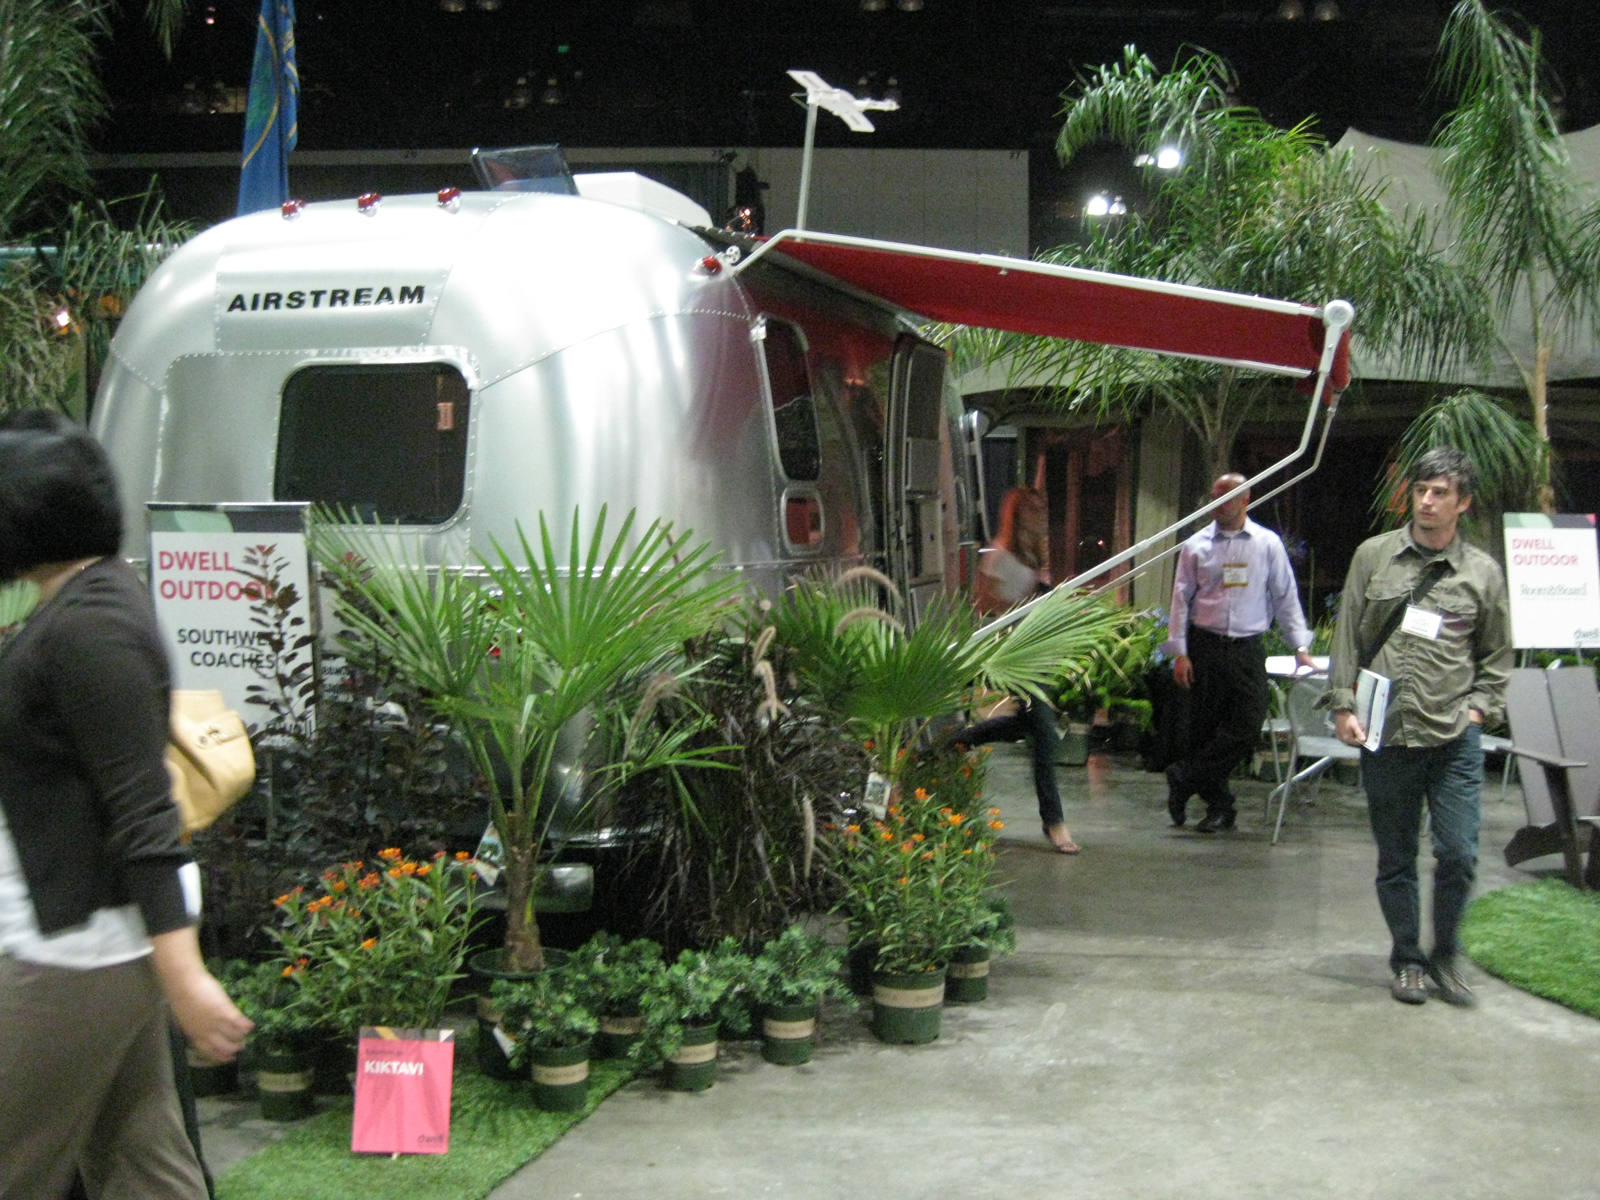 Also set up at the exhibition is the nineteen-foot-long Airstream Victorinox Special Edition Trailer.